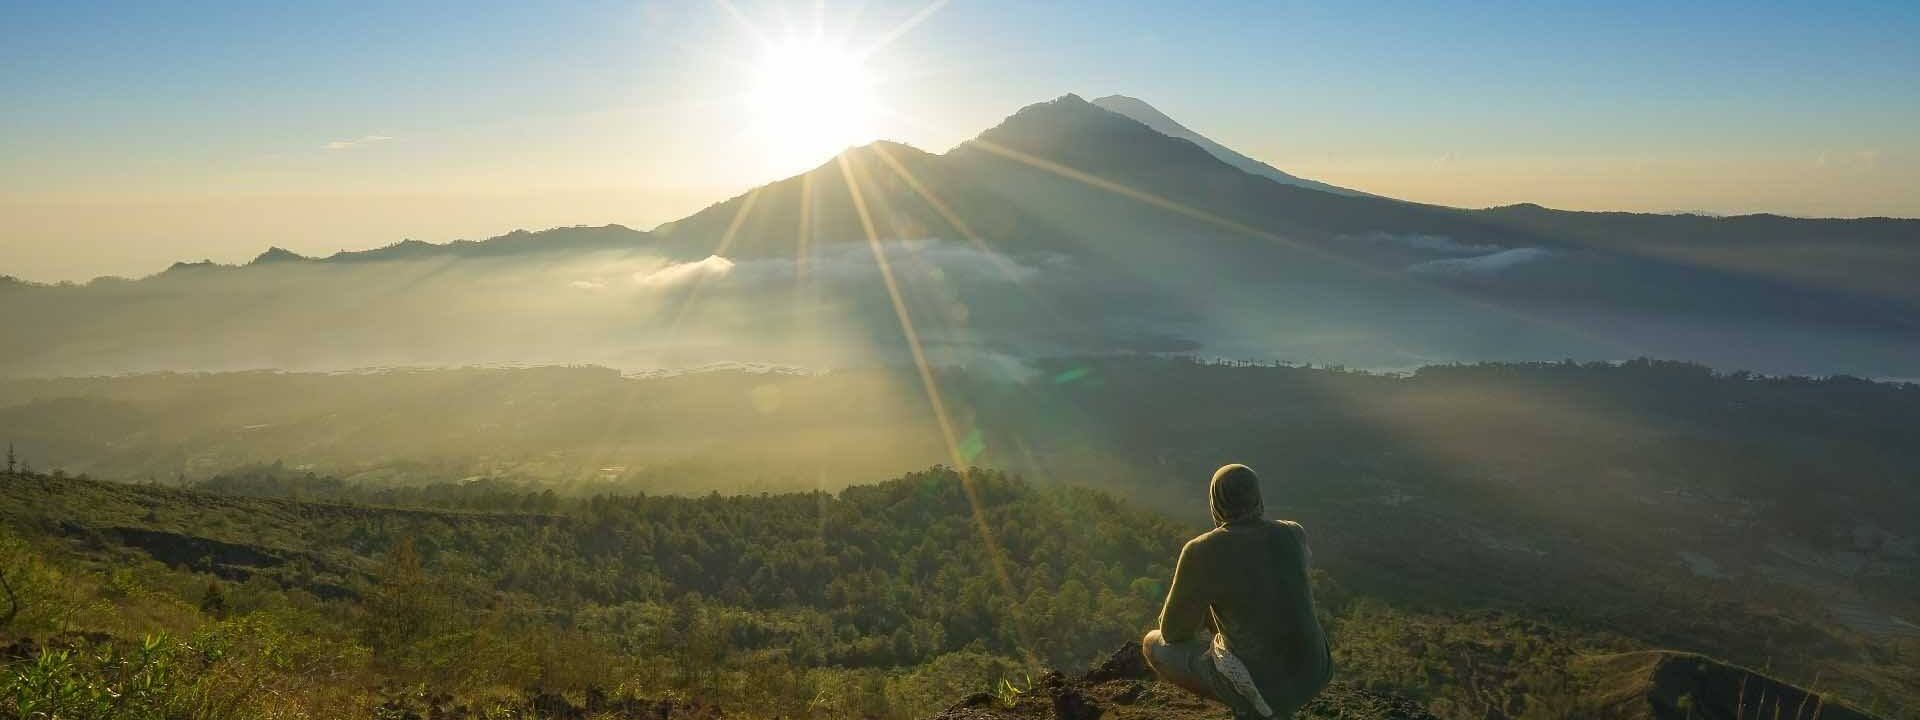 See sunrise at Mount Agung with Trekking Tour